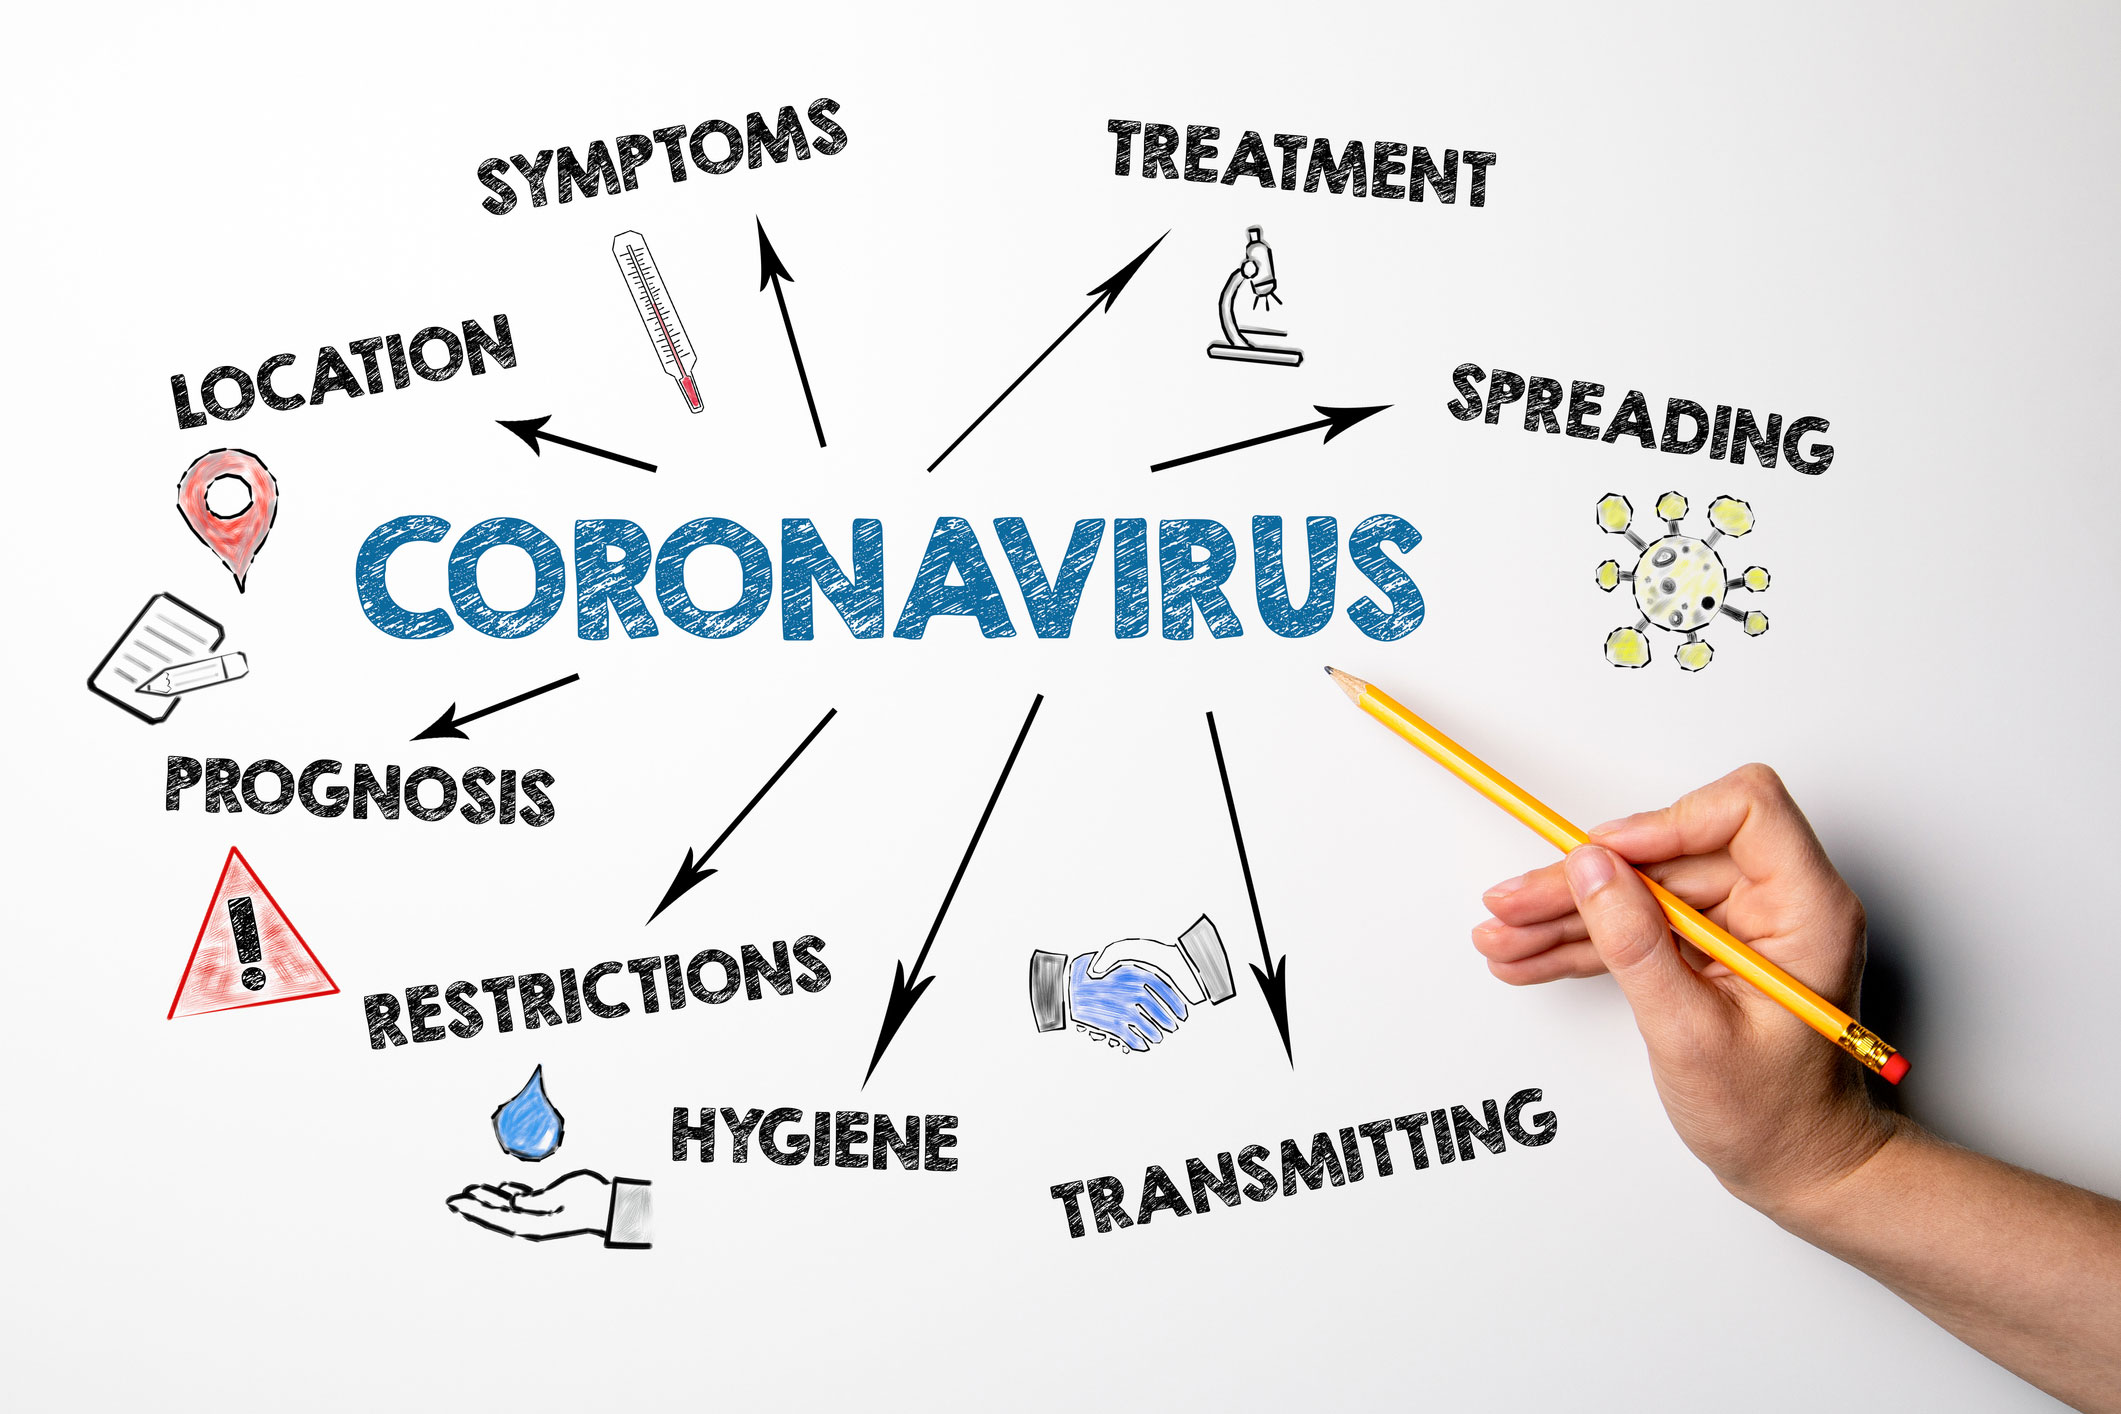 Coronavirus. Symptoms, spreading, transmitting and restrictions concept. Chart with keywords and icons - stock photo